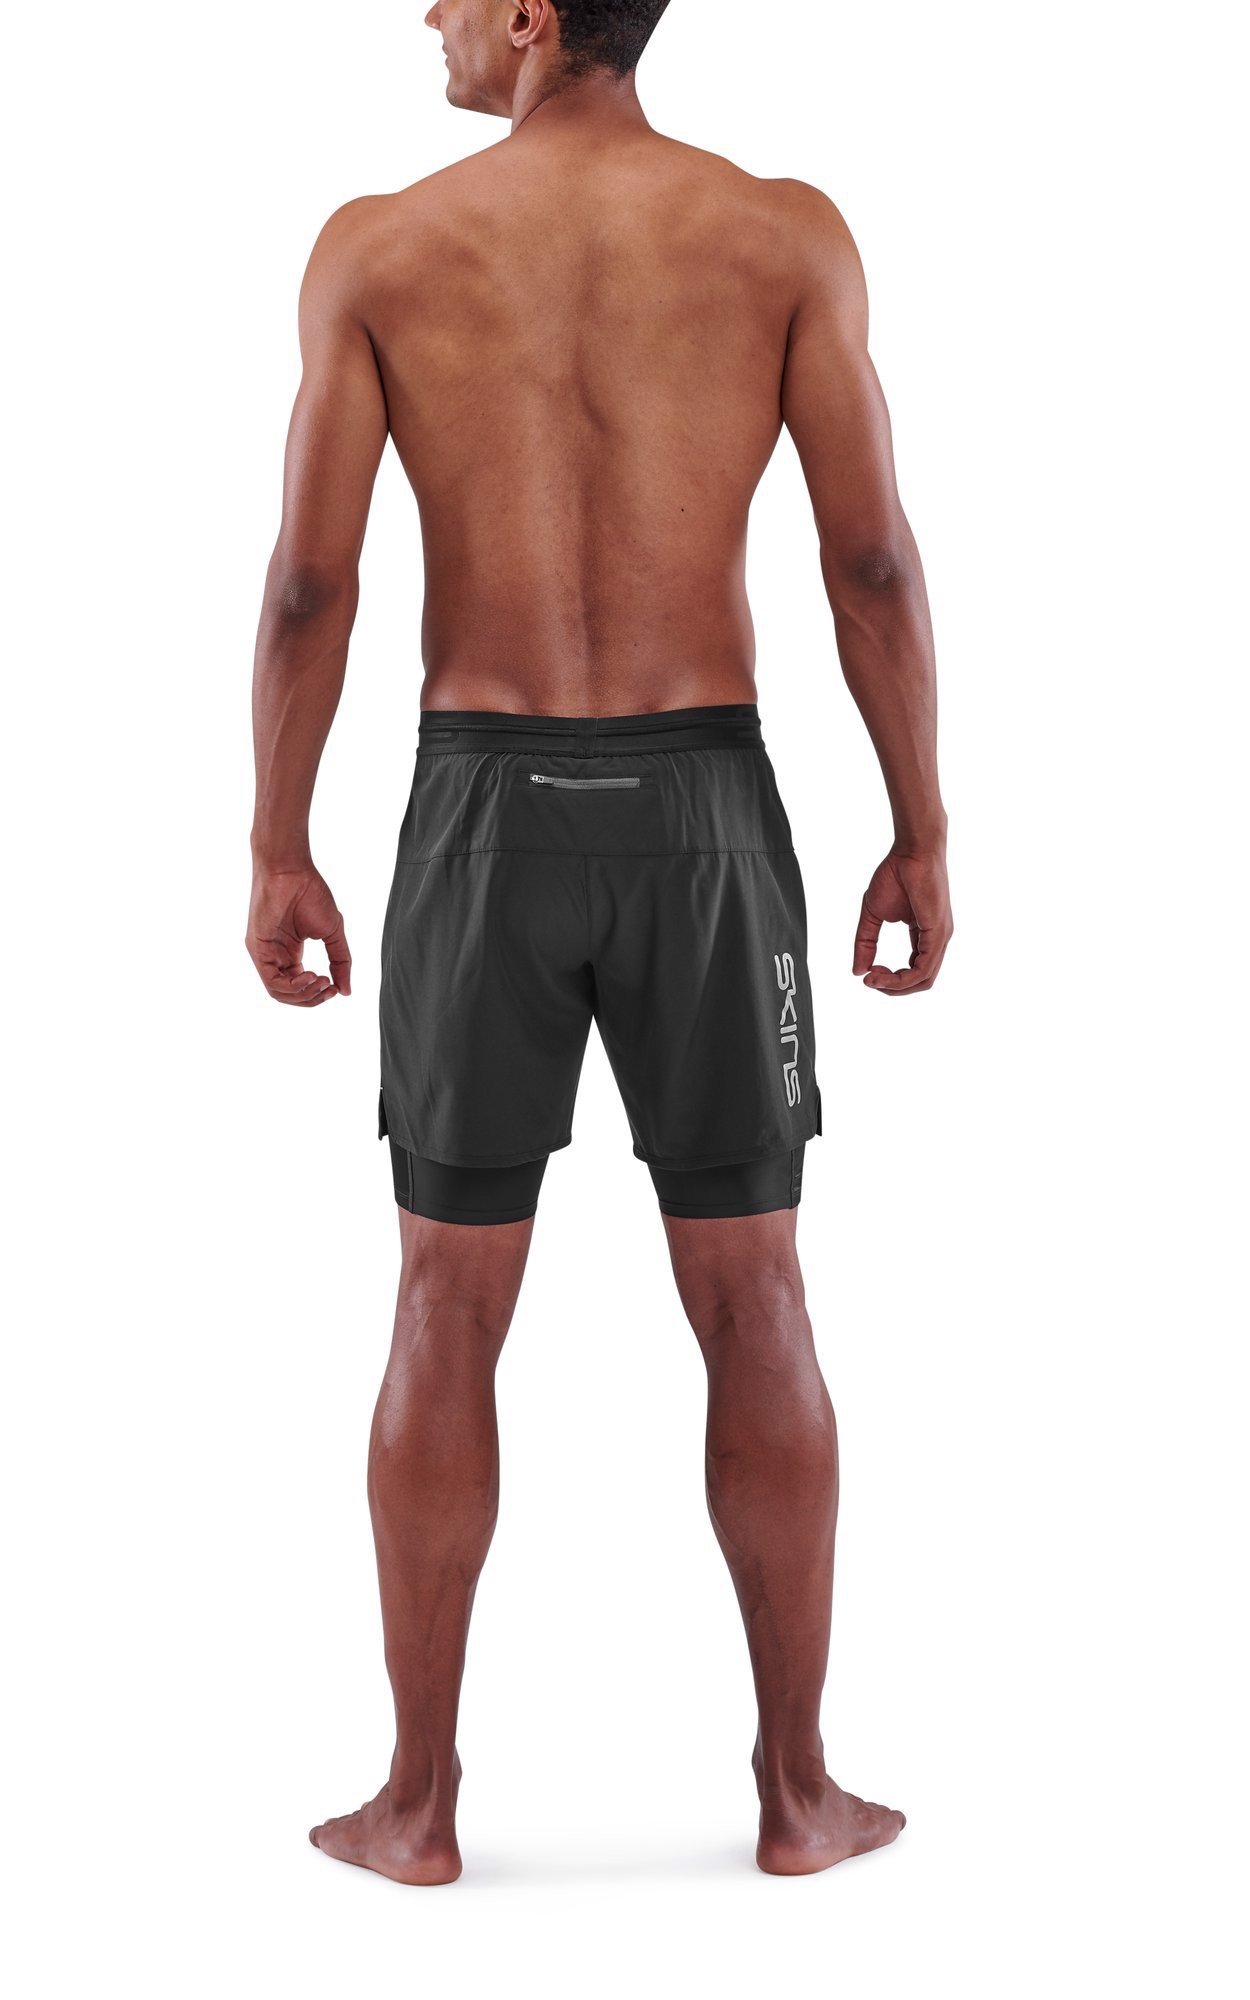 Skins: Quần chạy bộ 2 in 1 Compression Superpose 3-Series - Black